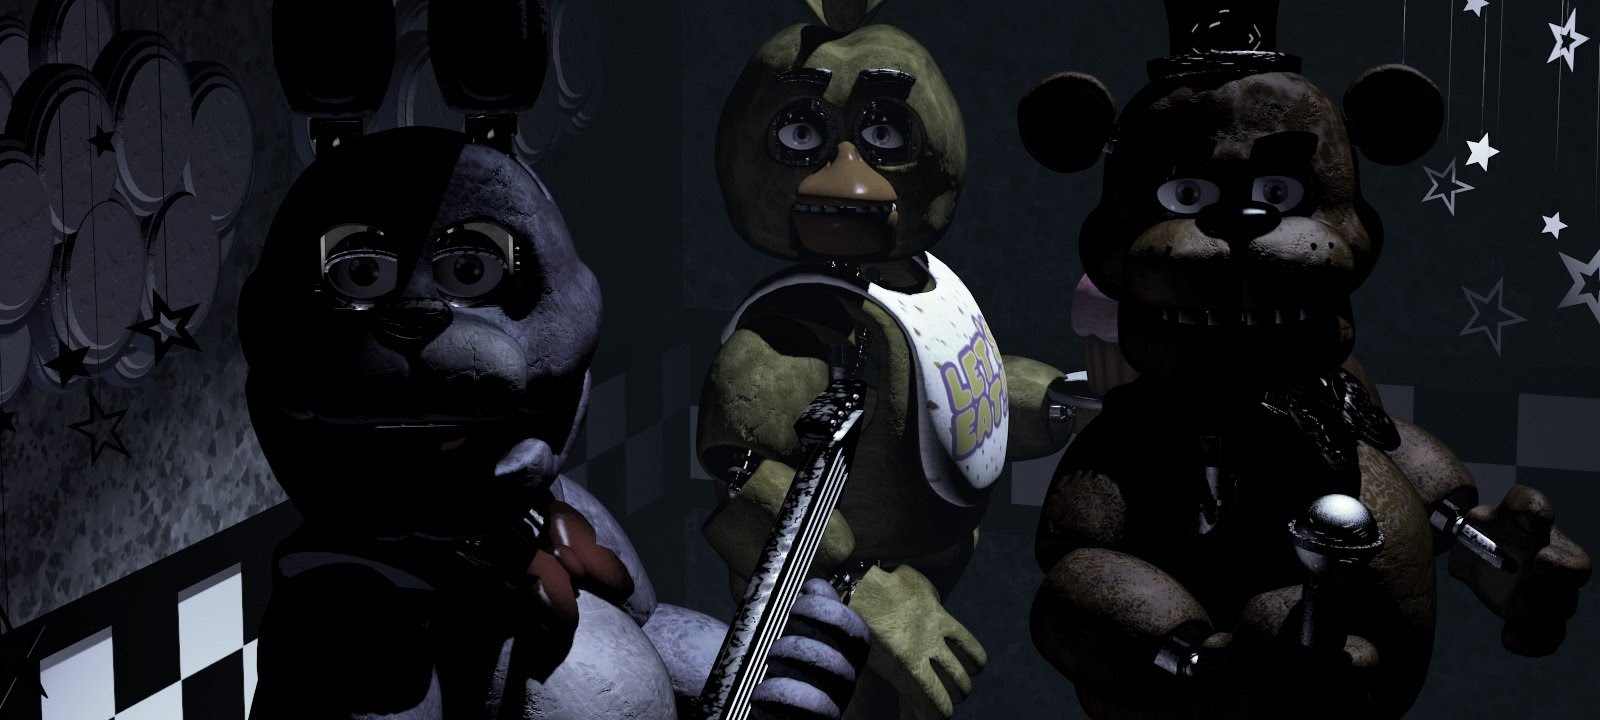 New Five Nights at Freddy's game confirmed and canceled in the same announcement screenshot